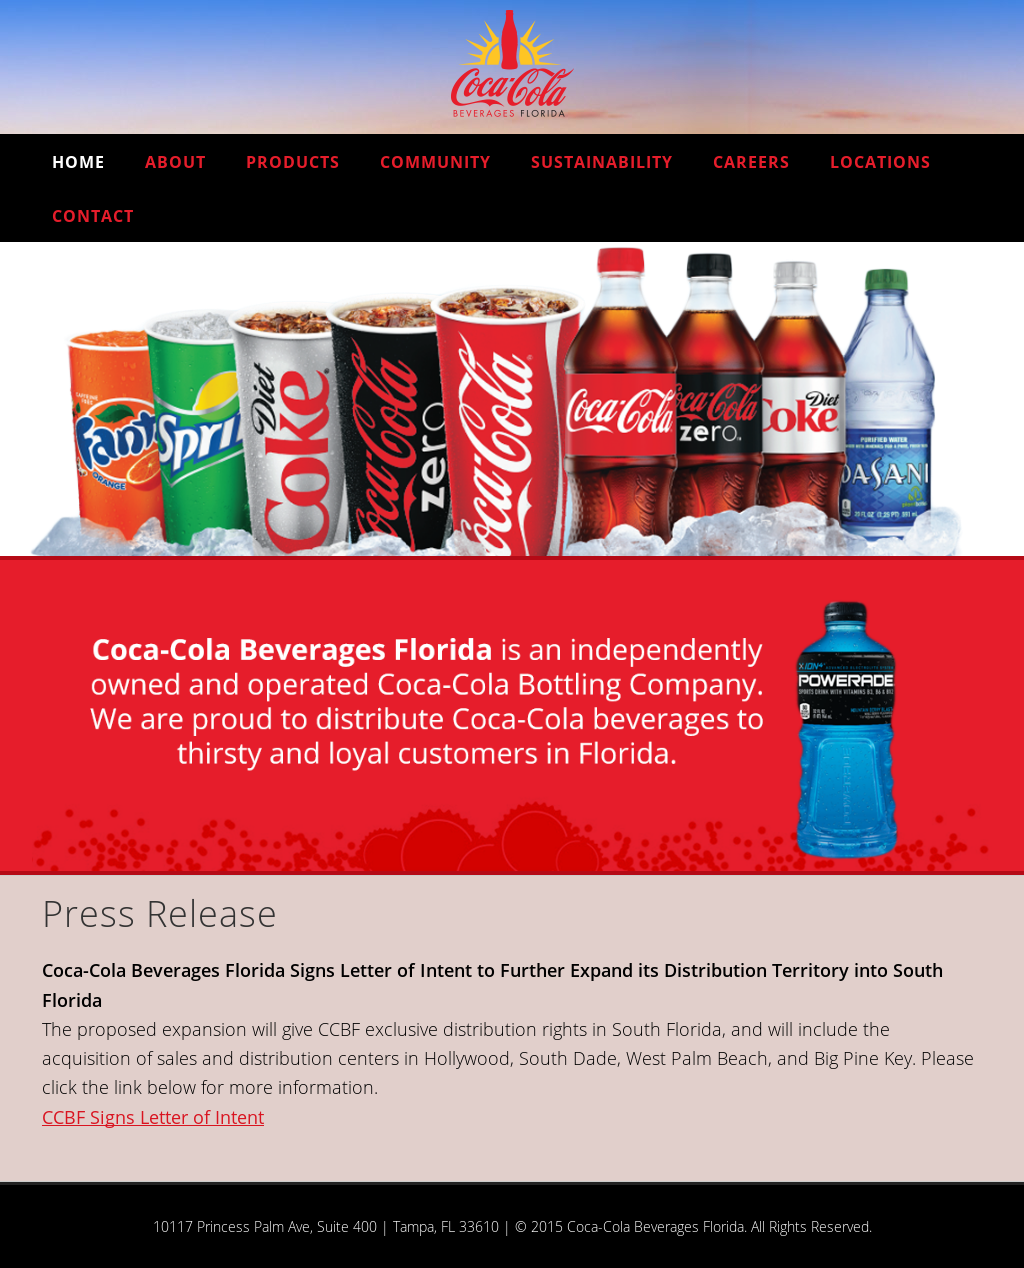 Coca-Cola Beverages Florida Competitors, Revenue and Employees